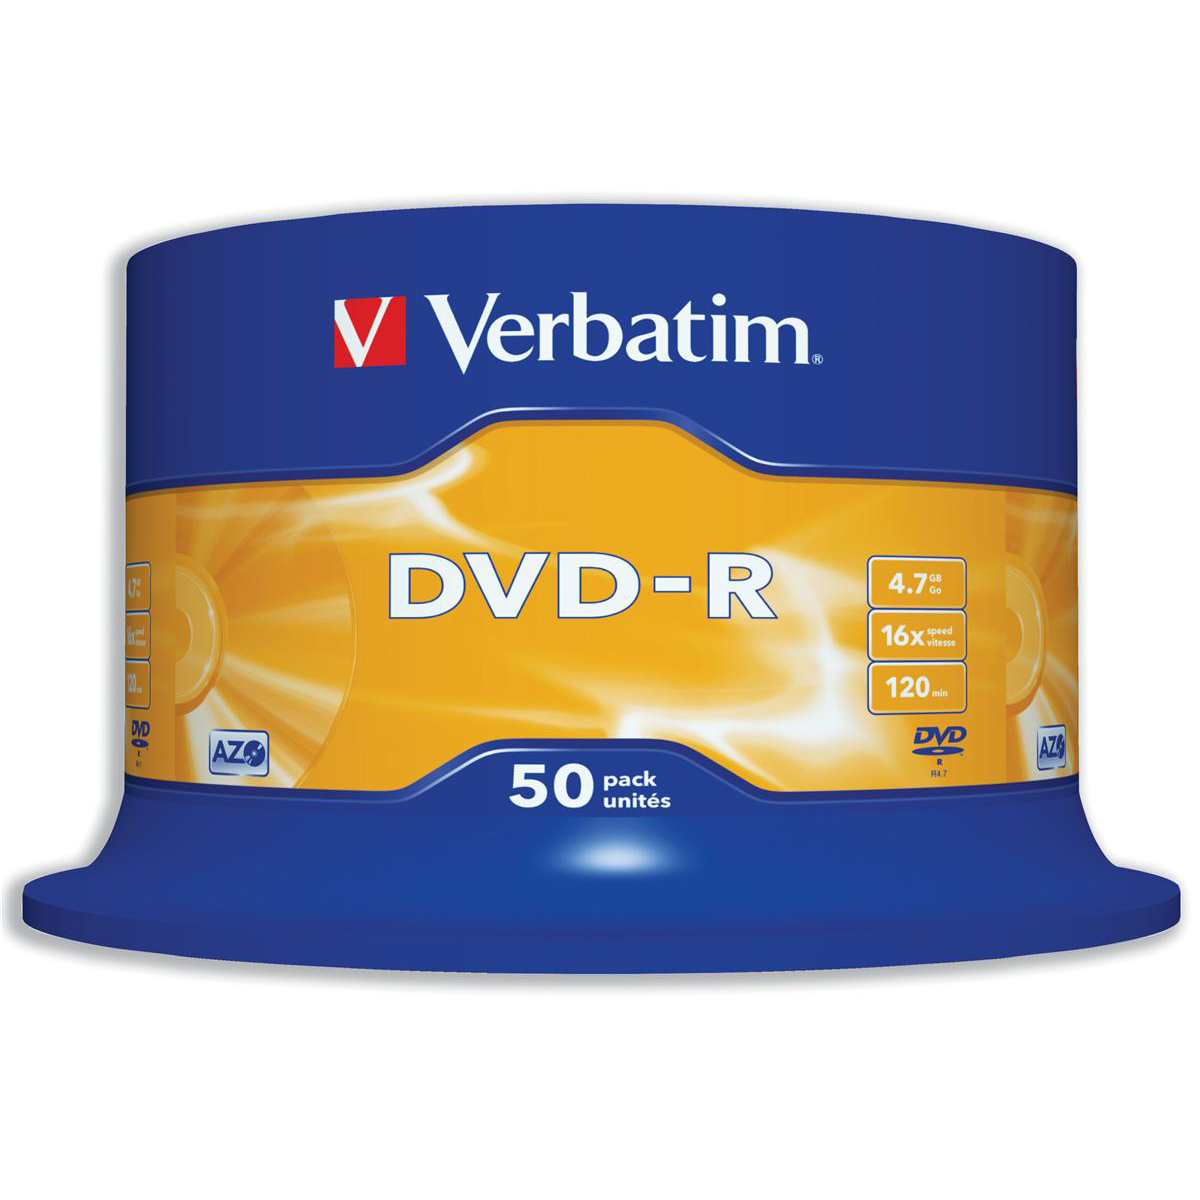 Digital versatile disks DVDs Verbatim DVD-R 4.7GB 16X Spindle Ref 43548 Pack 50